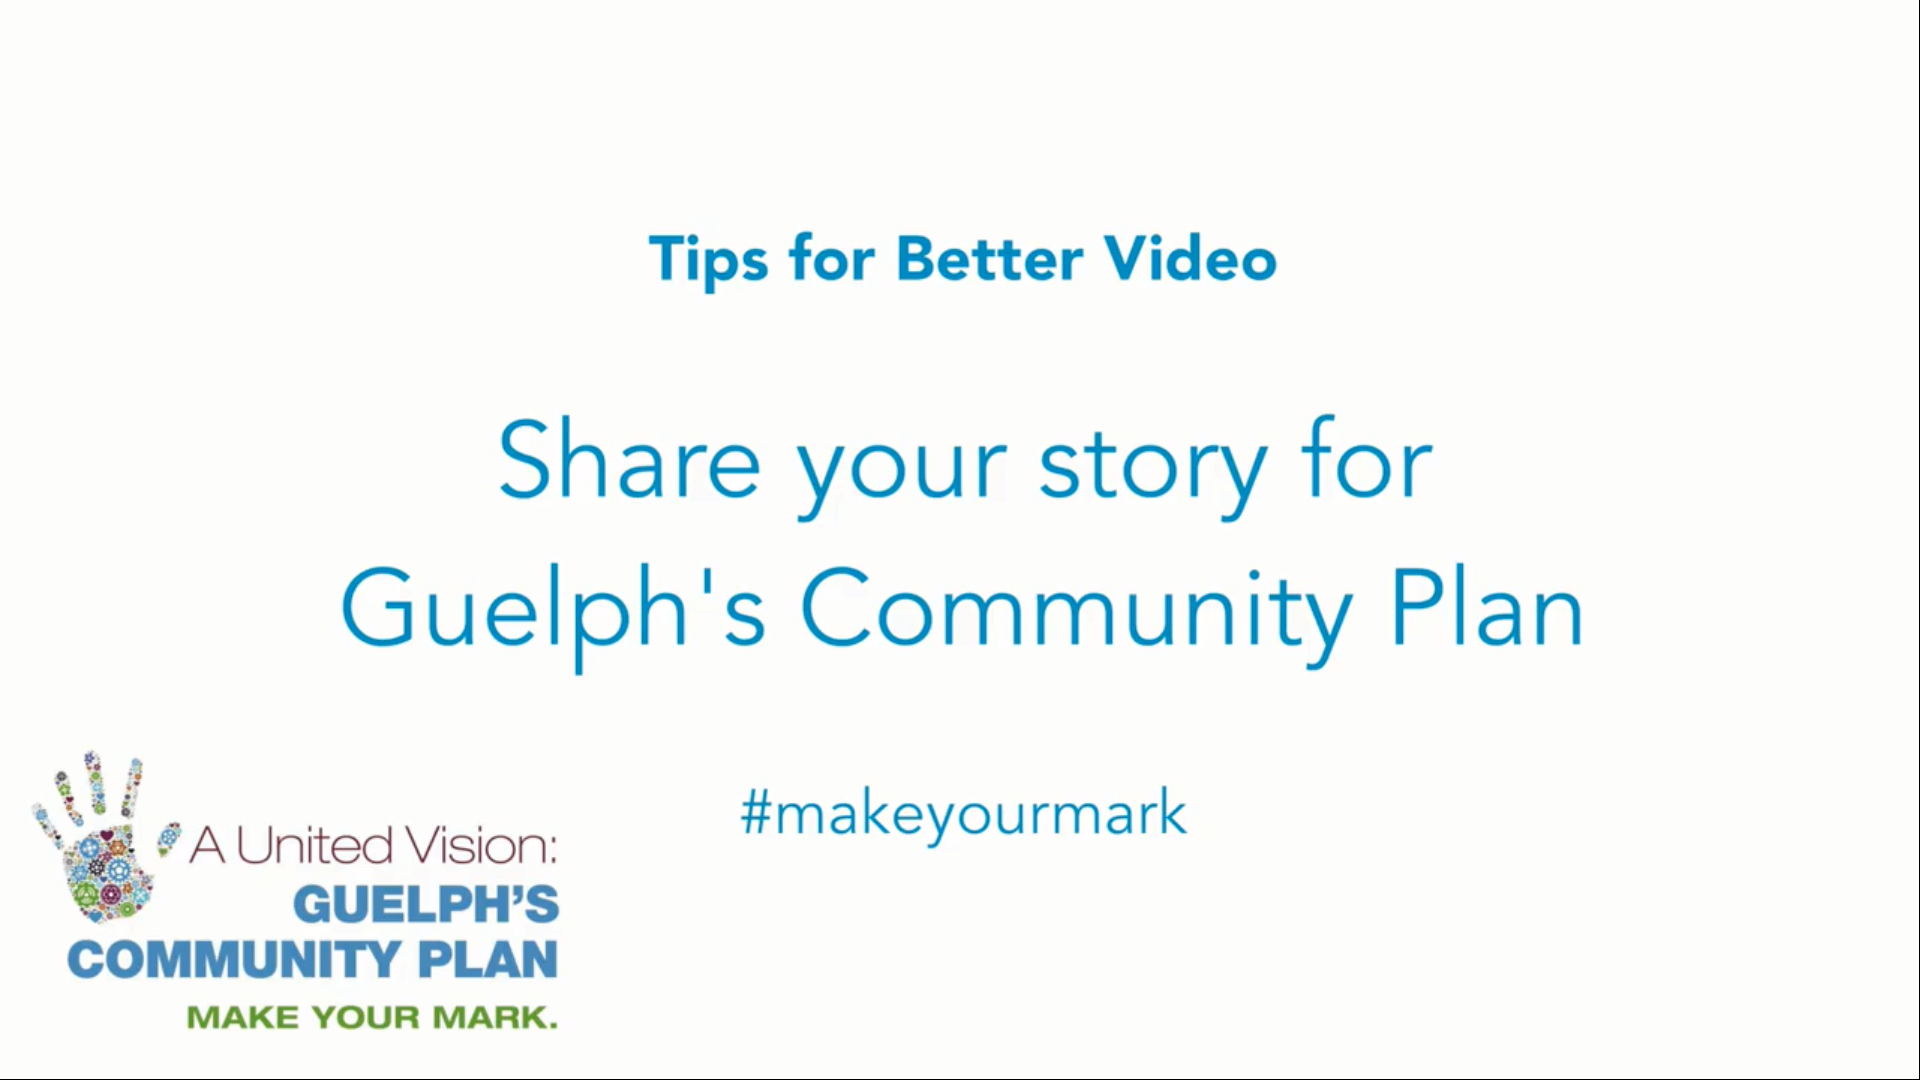 How to take a community plan video